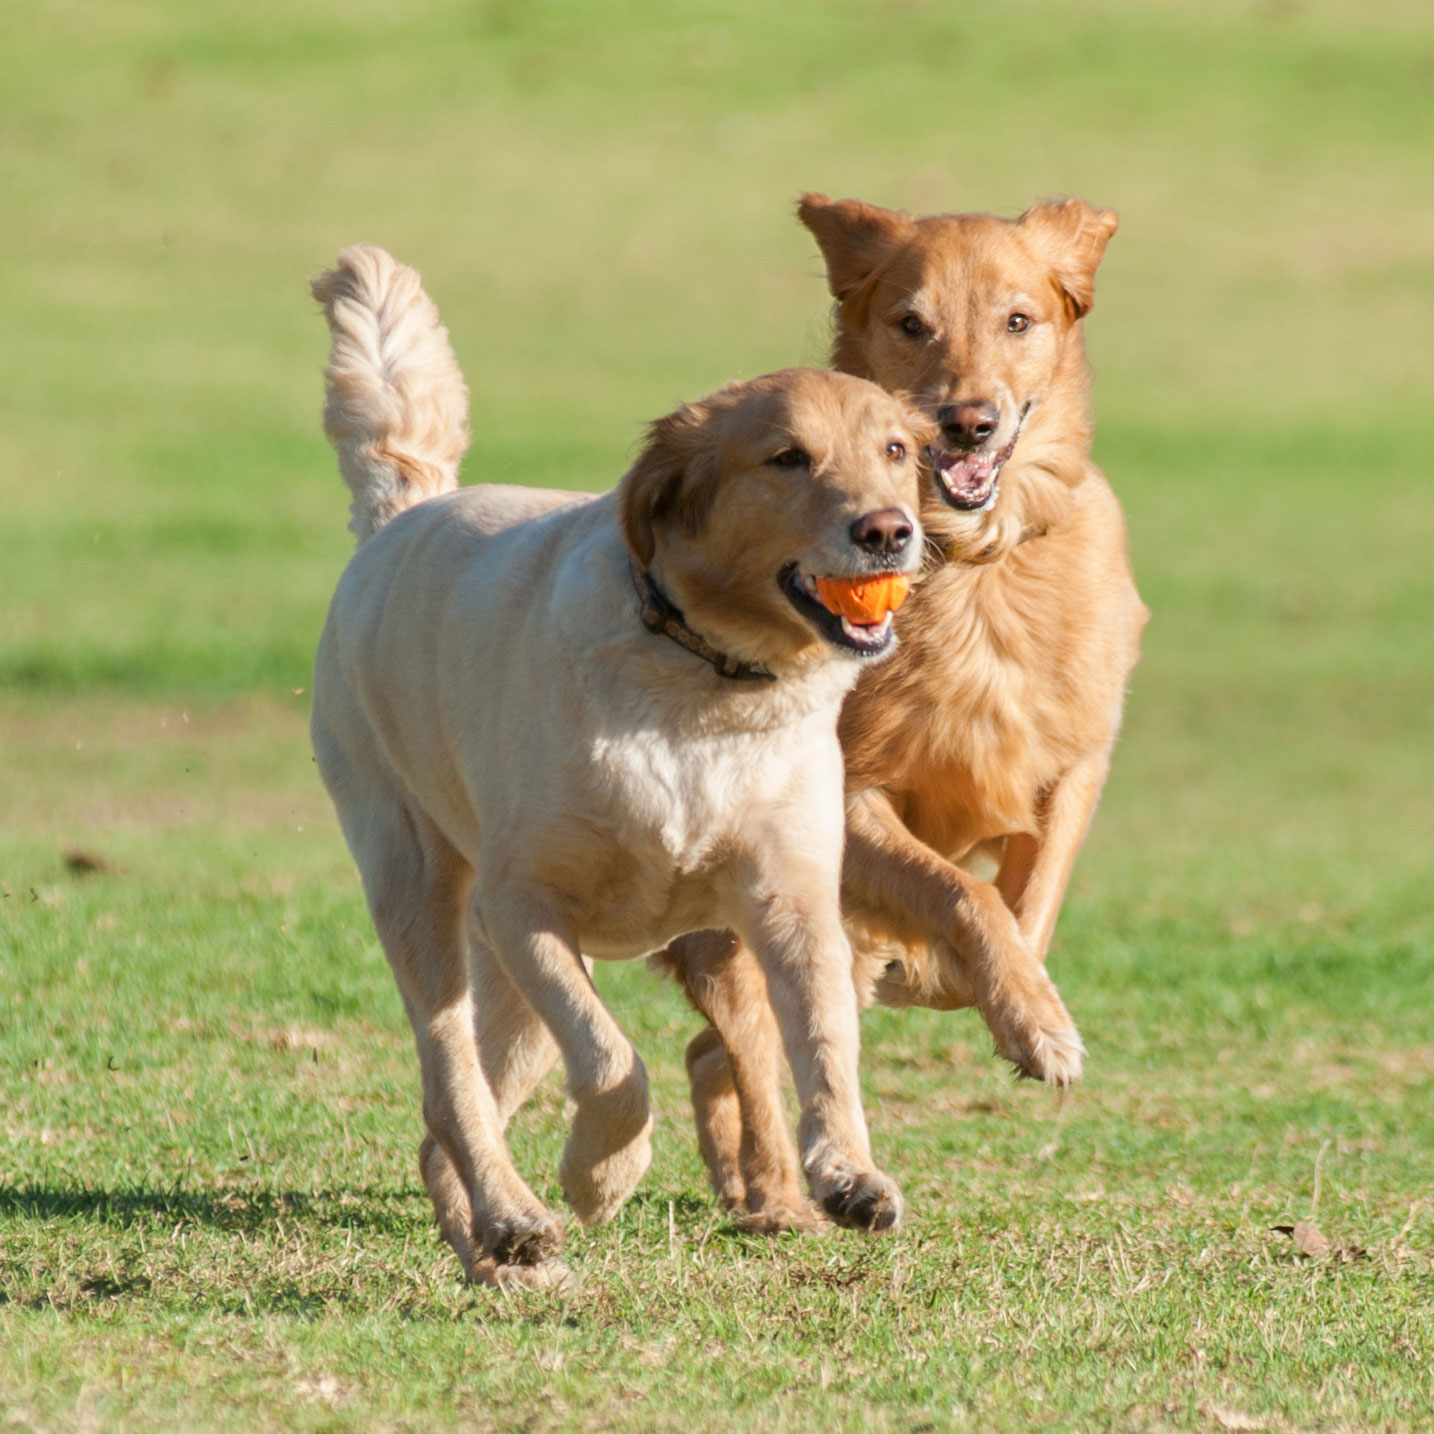 Two golden retrievers playing with a ball